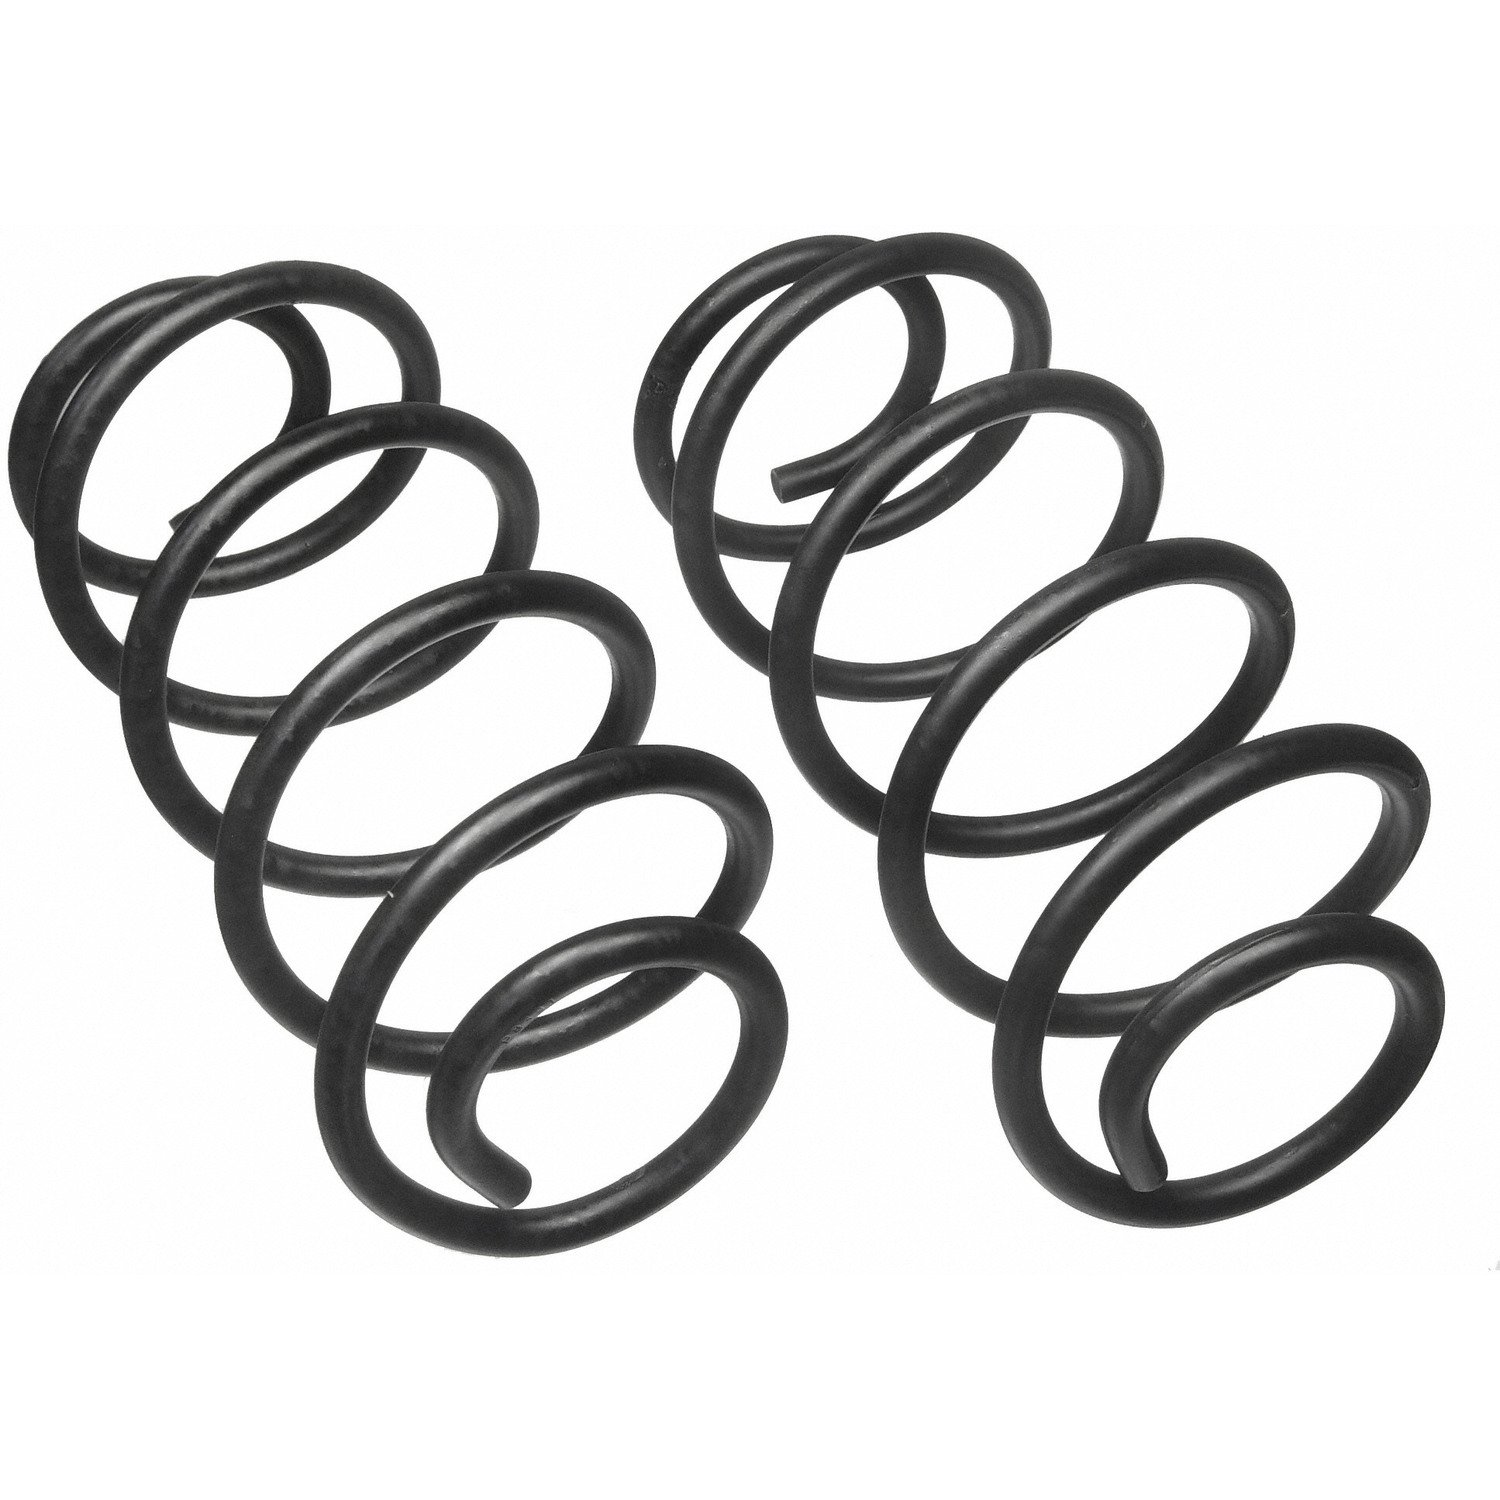 Moog 81487 Coil Spring Set for Dodge Caliber, Jeep Compass, Patriot